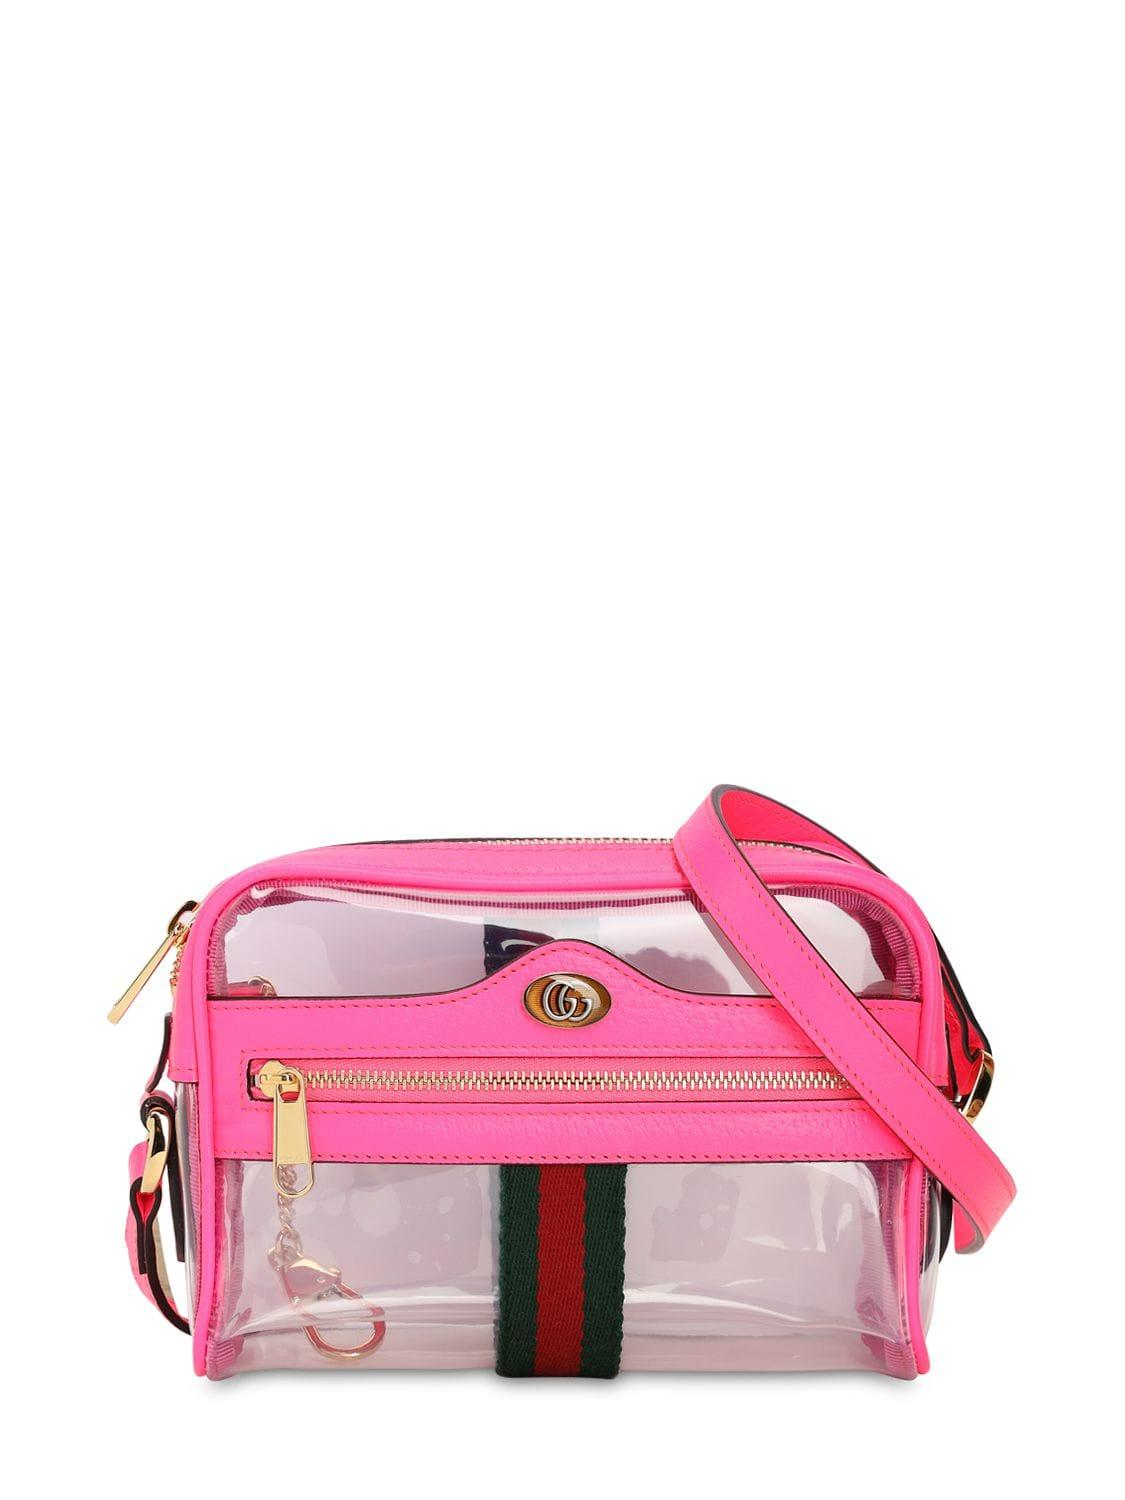 8865fa739 Lyst - Gucci Mini Ophidia Ghost Vinyl Shoulder Bag in Pink